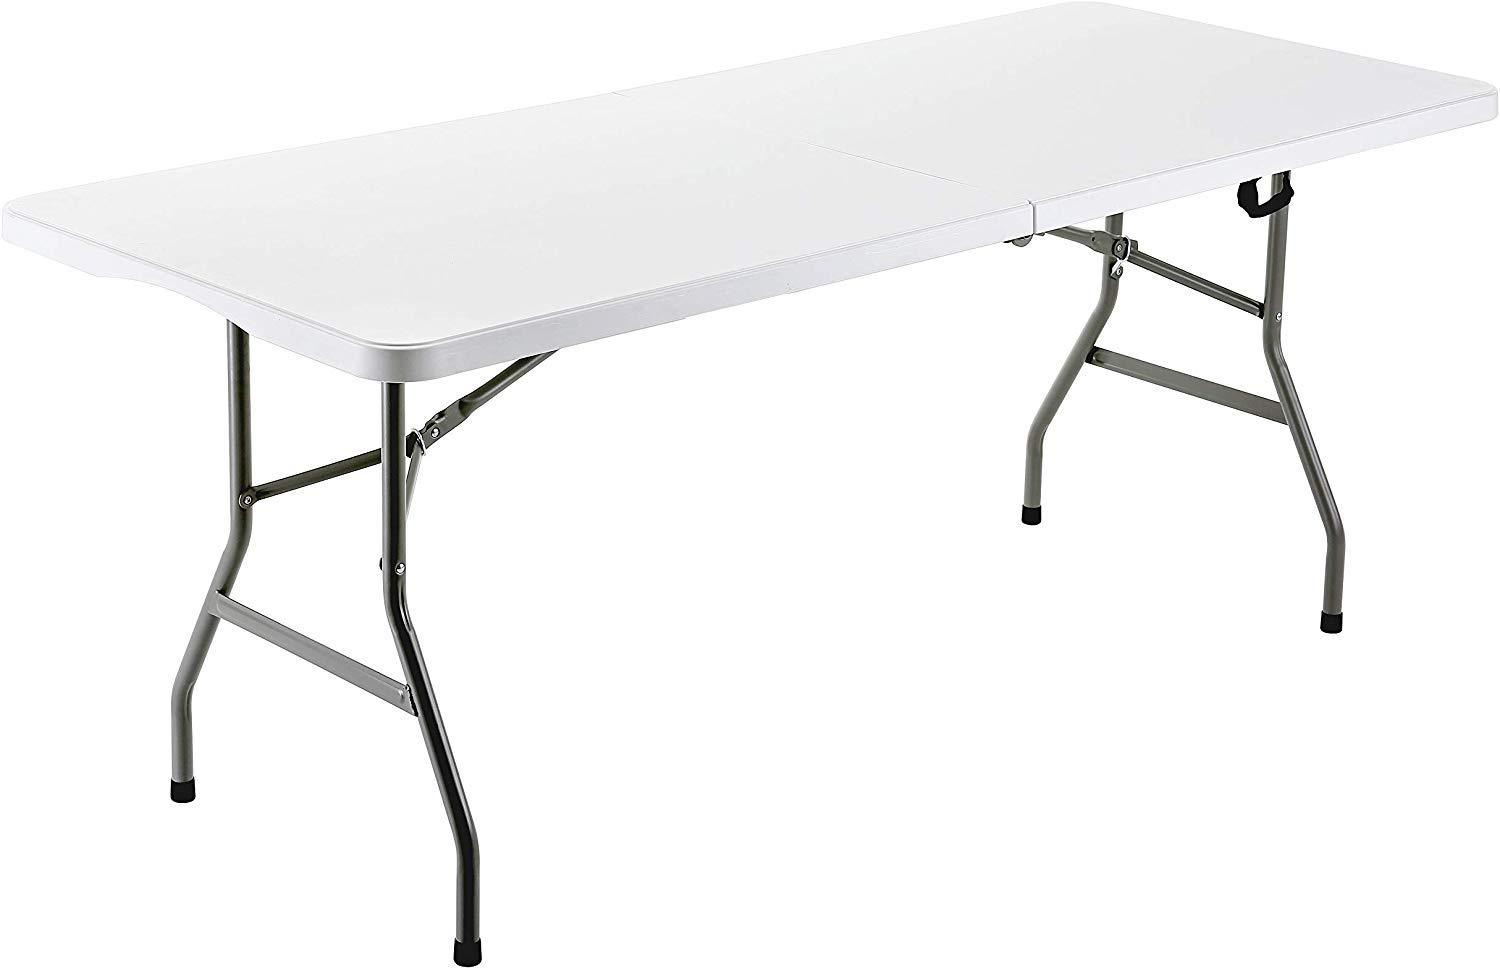 - 10 Best Portable Picnic Tables In 2020 – Buying Guide And Reviews